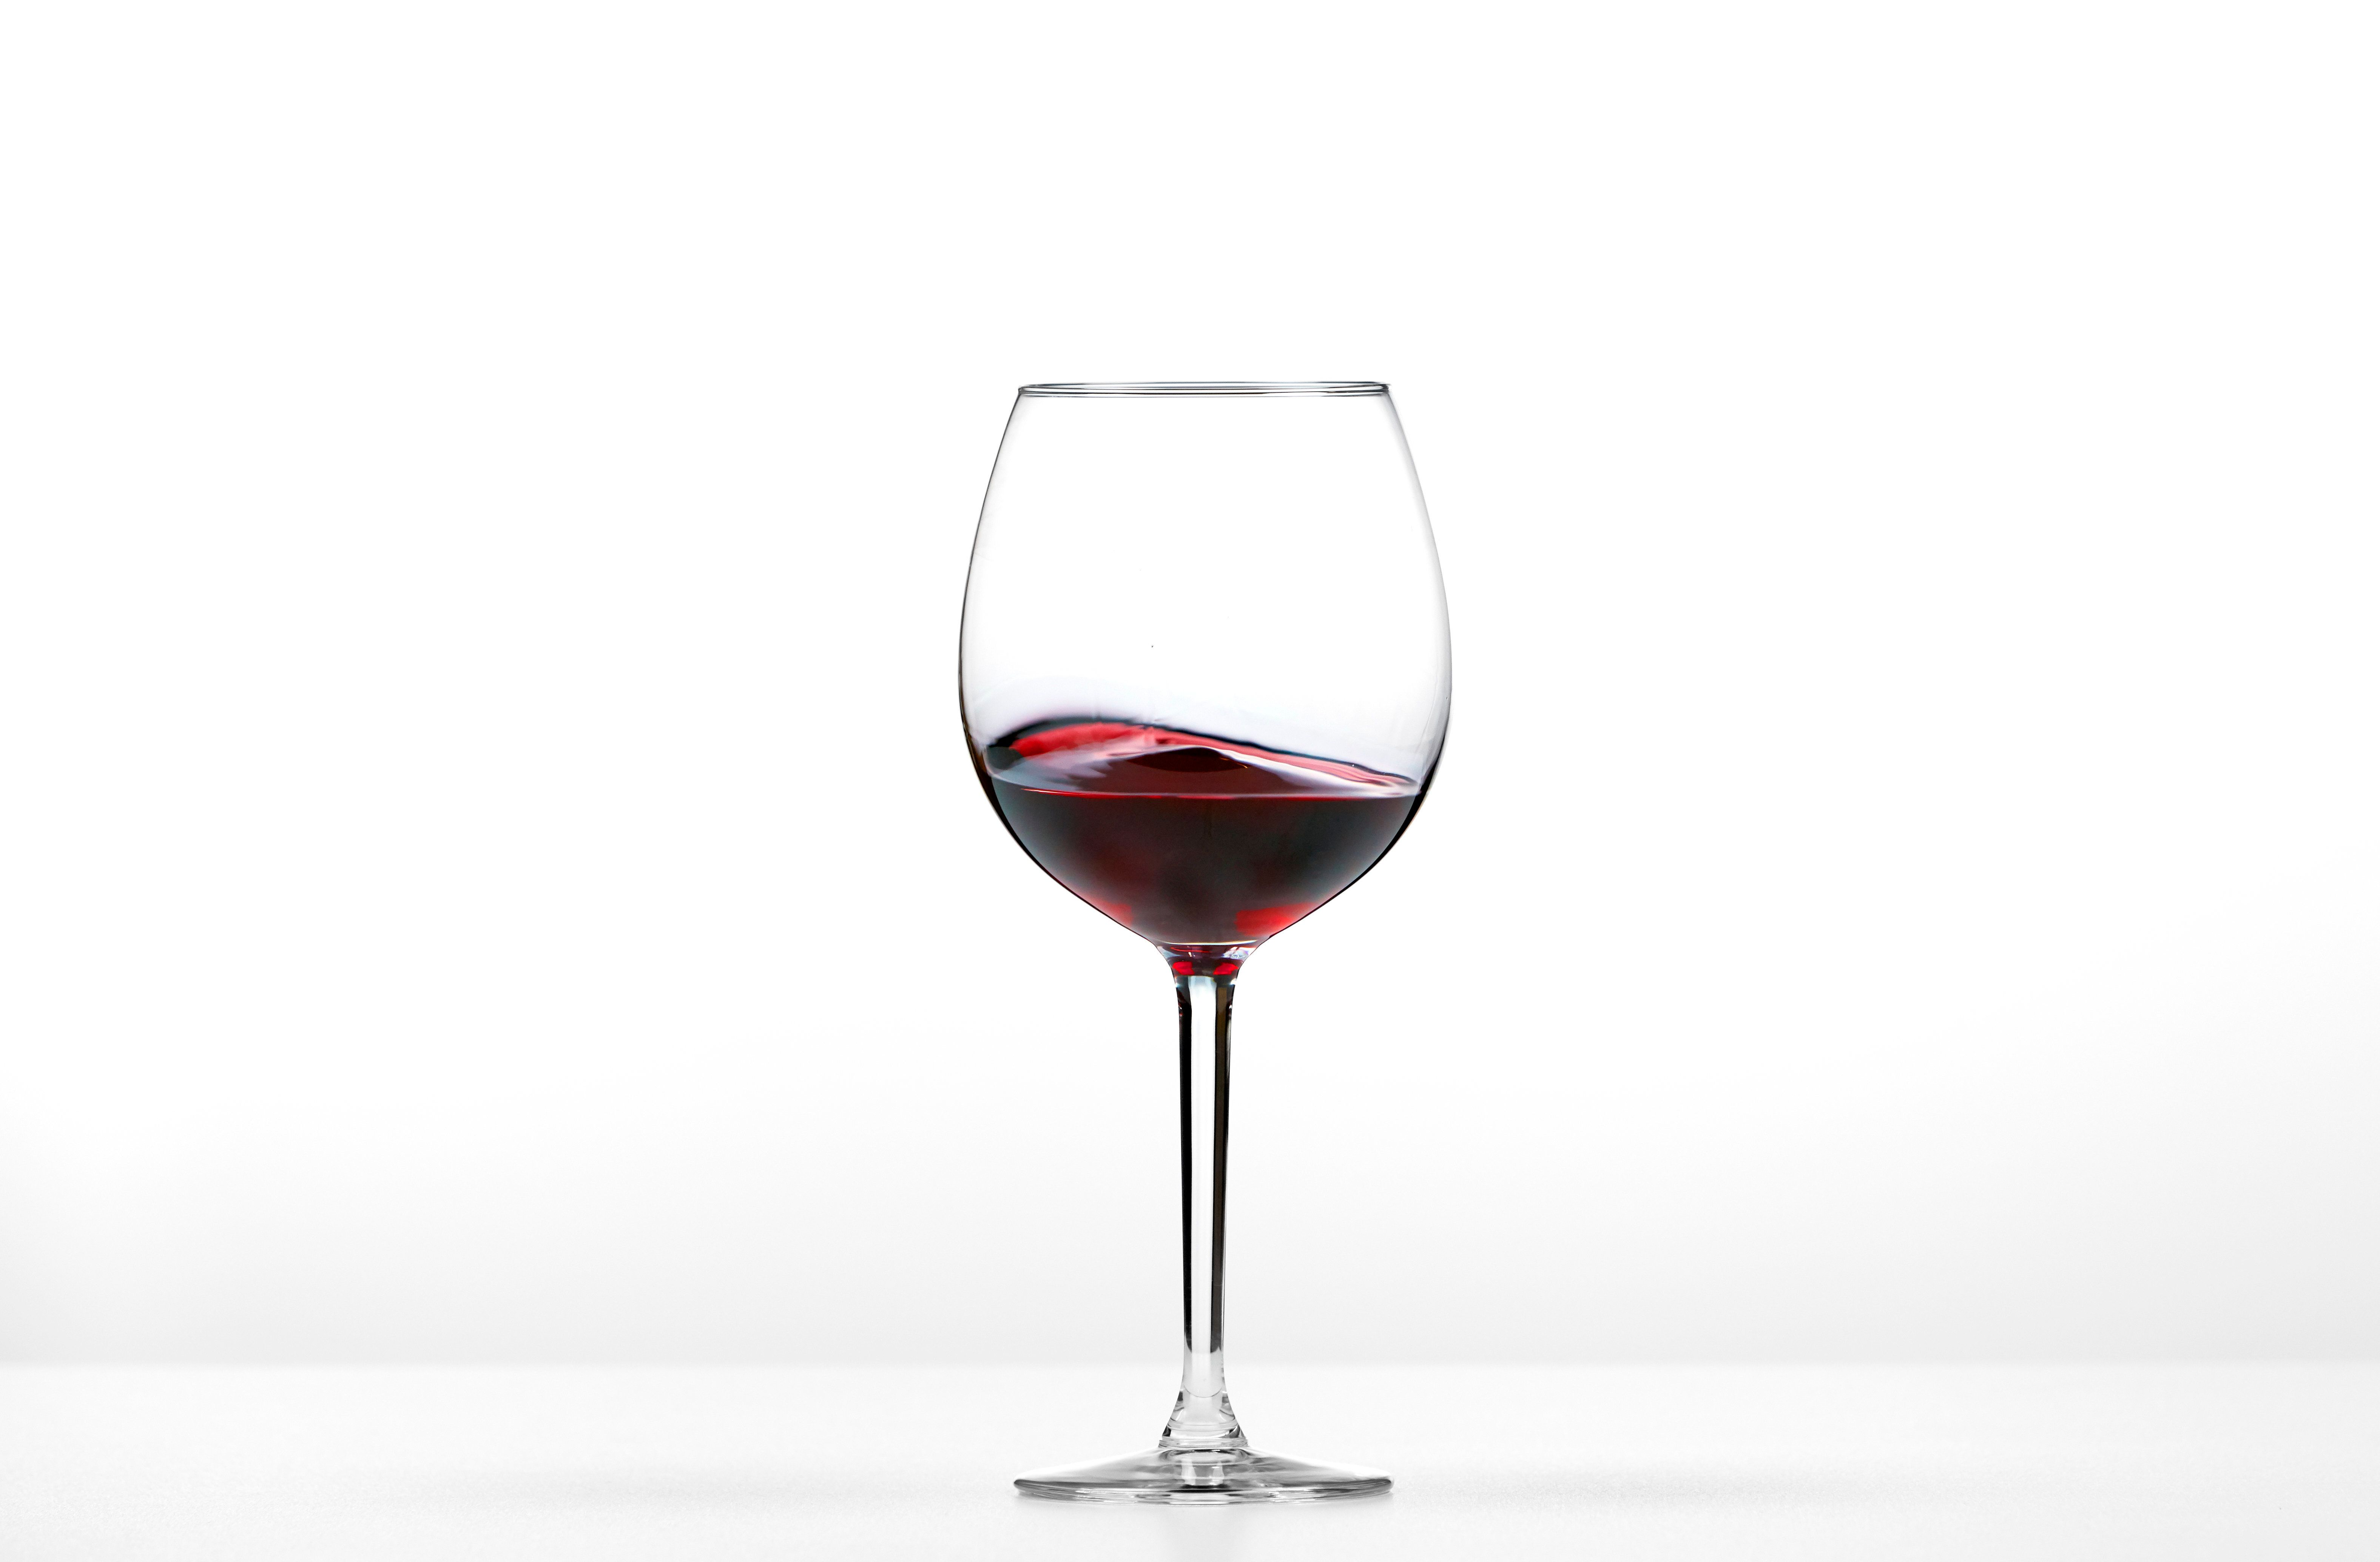 Rolling red wine on white background.